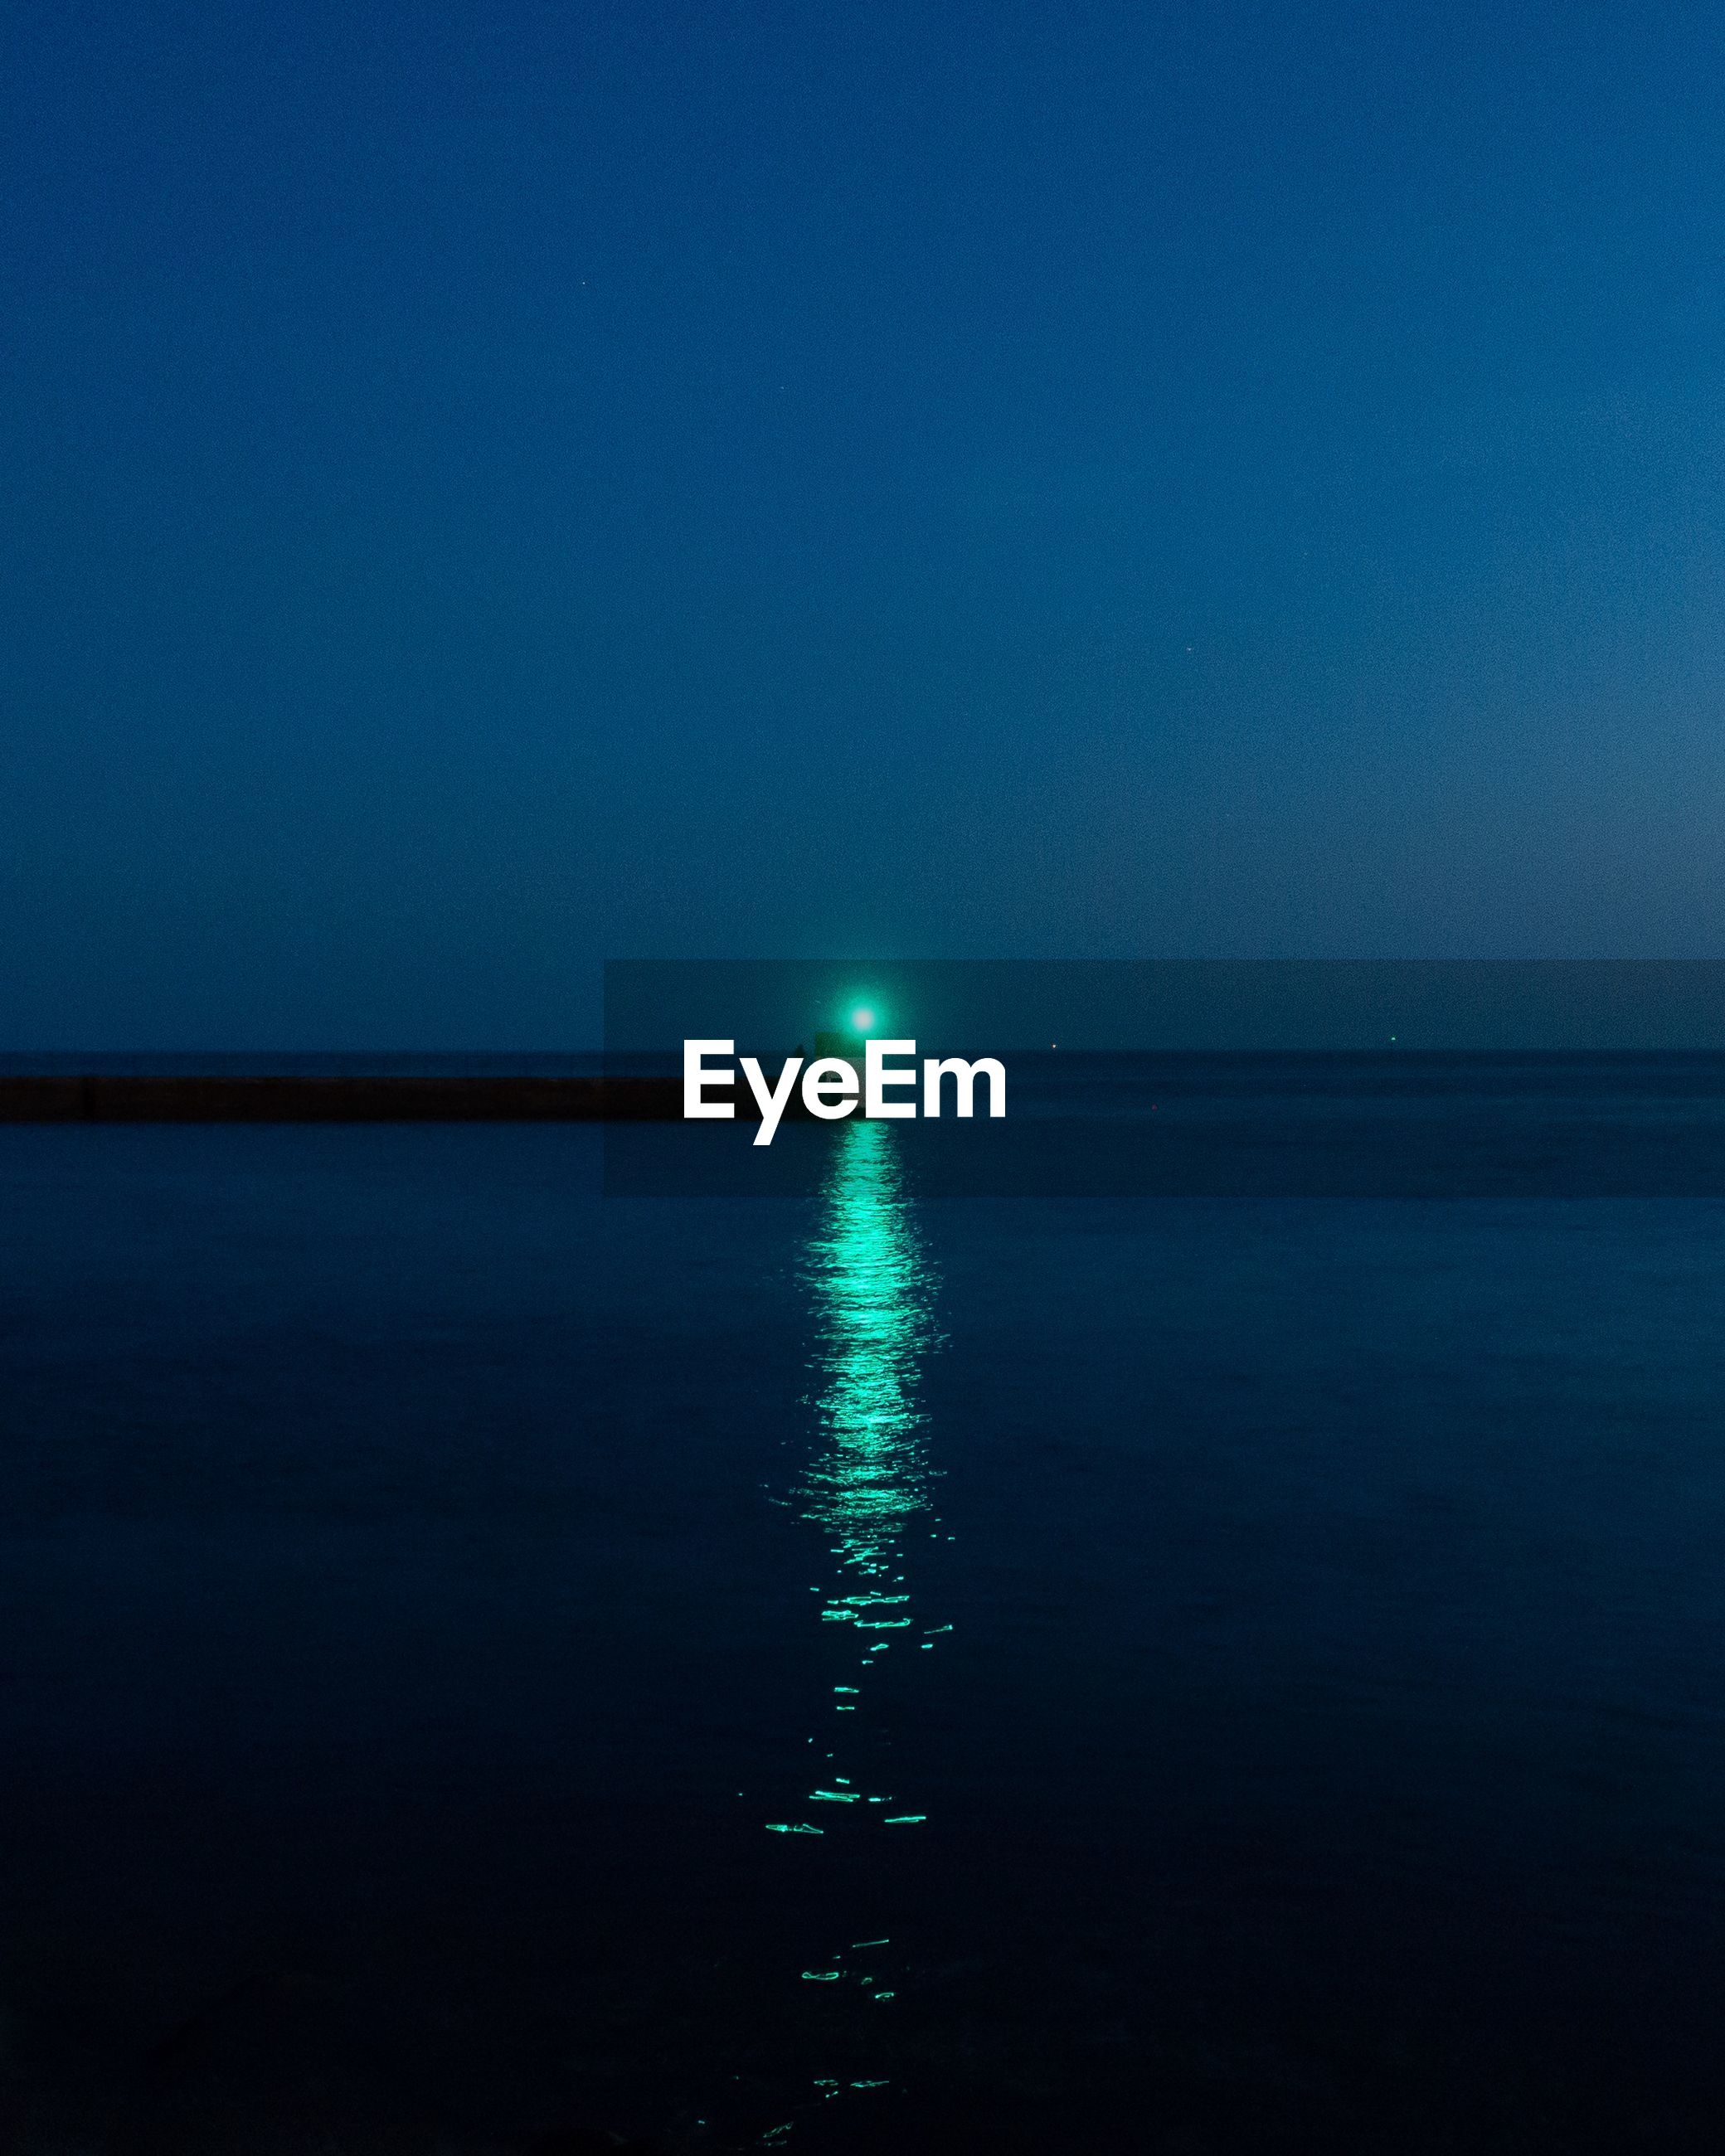 water, sea, sky, beauty in nature, scenics - nature, tranquility, waterfront, night, horizon over water, tranquil scene, nature, horizon, no people, illuminated, reflection, clear sky, copy space, blue, idyllic, moonlight